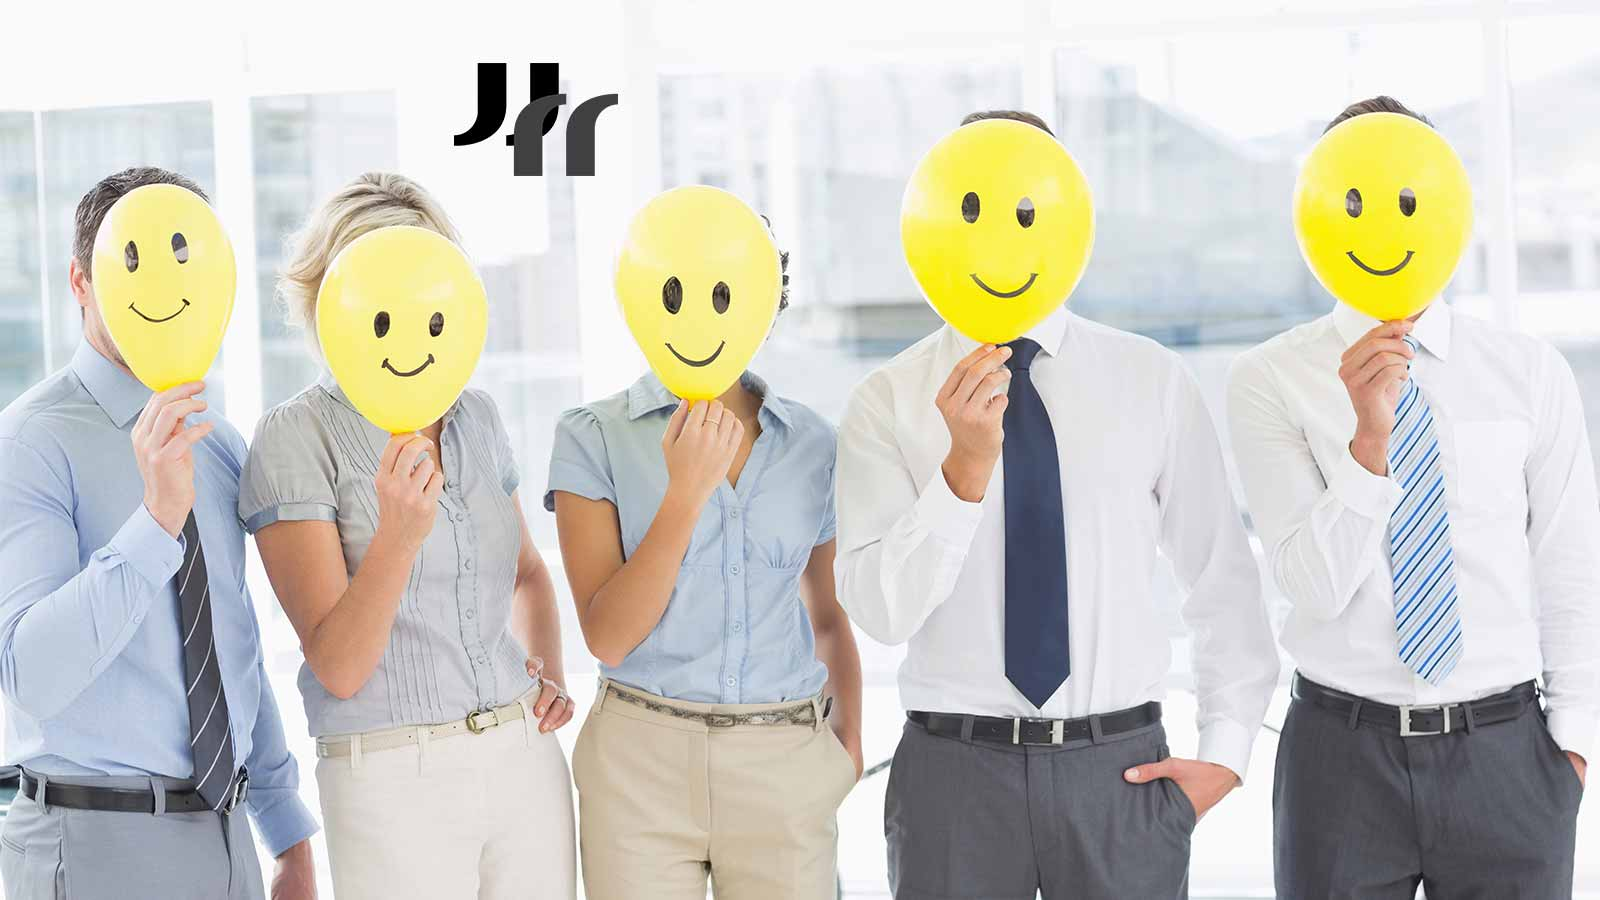 image of 5 people in dress shirts and slacks holding yellow smiley face balloons in front of their faces